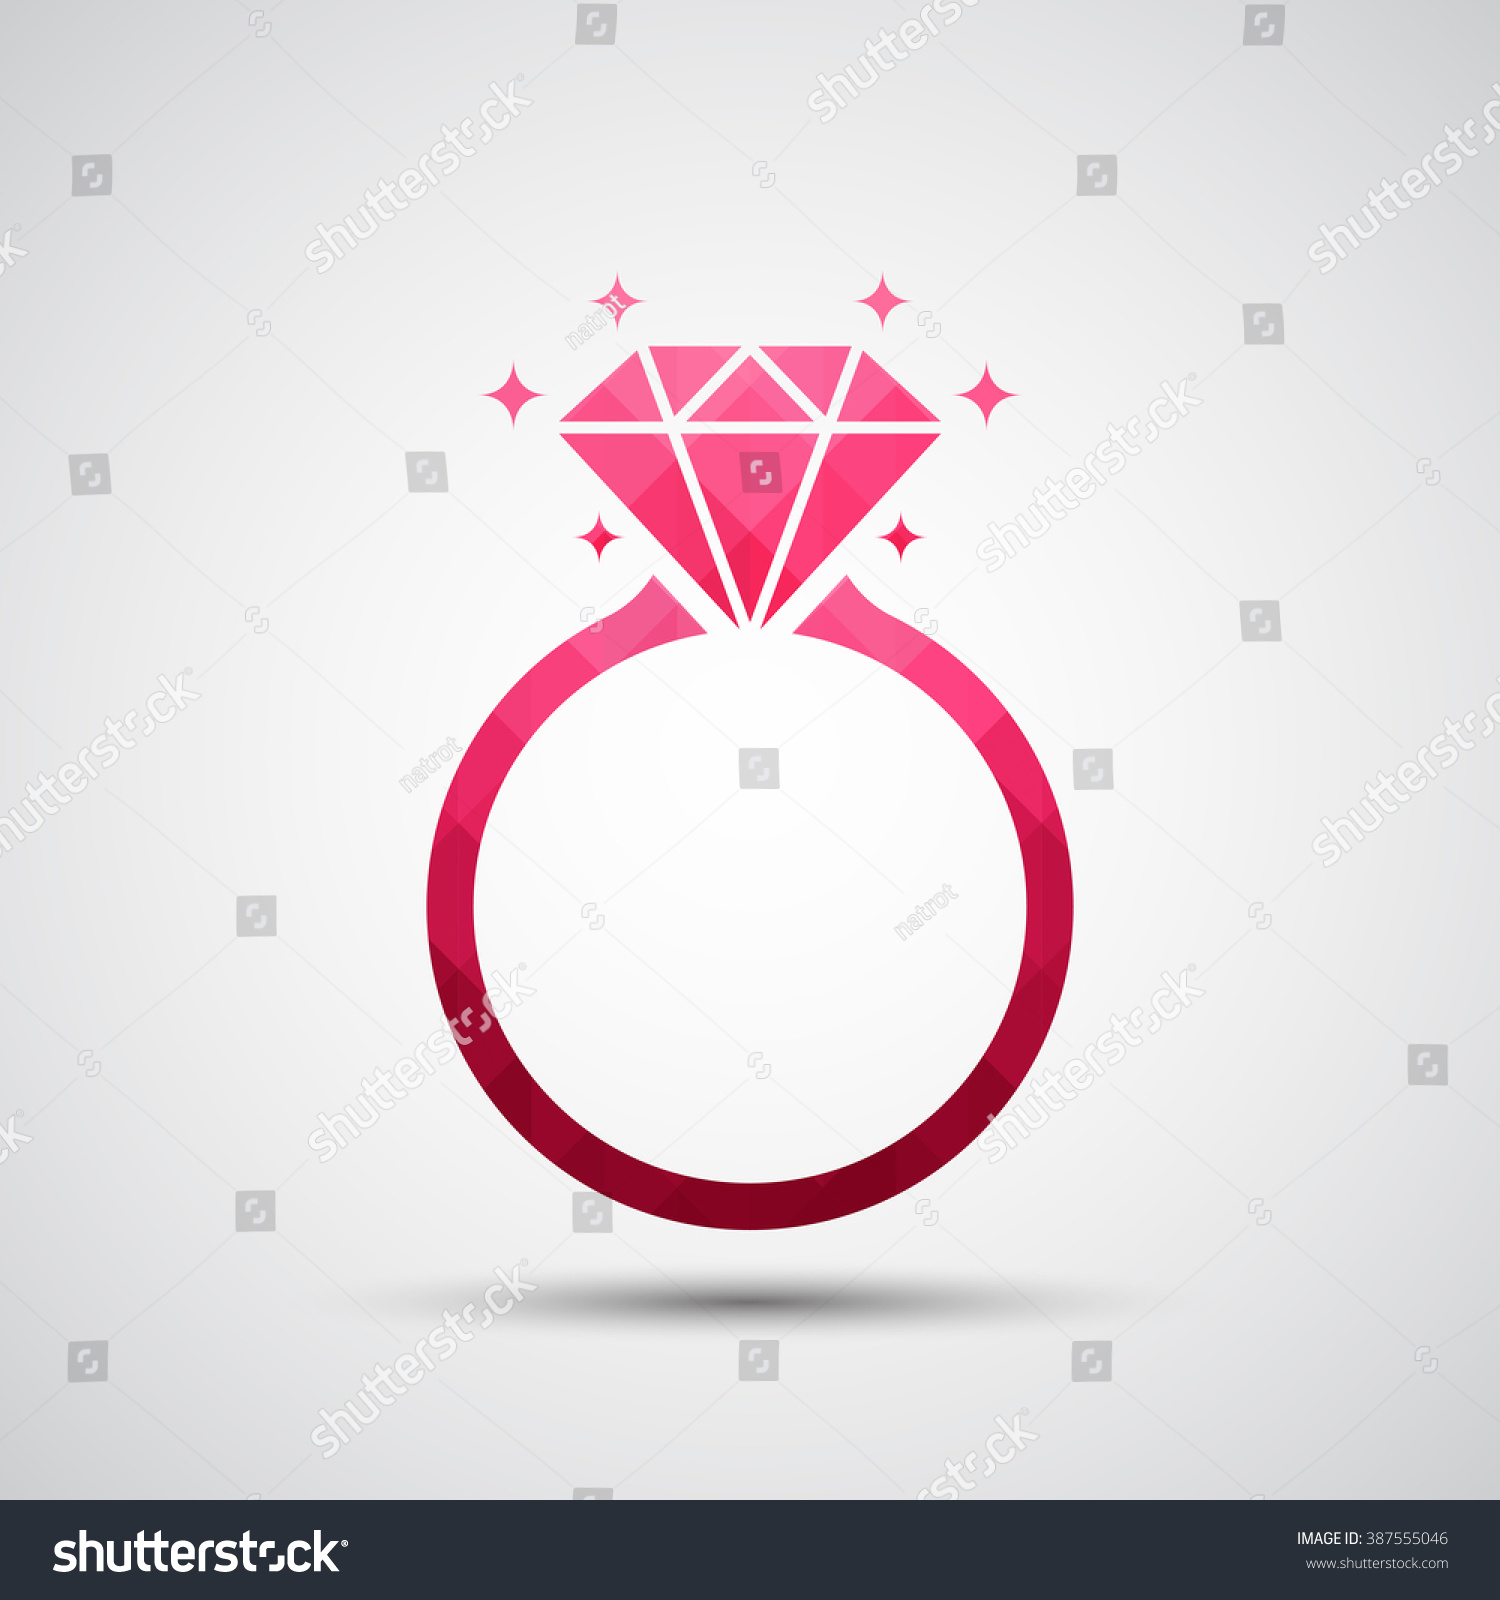 diamond ring vector icon - photo #10